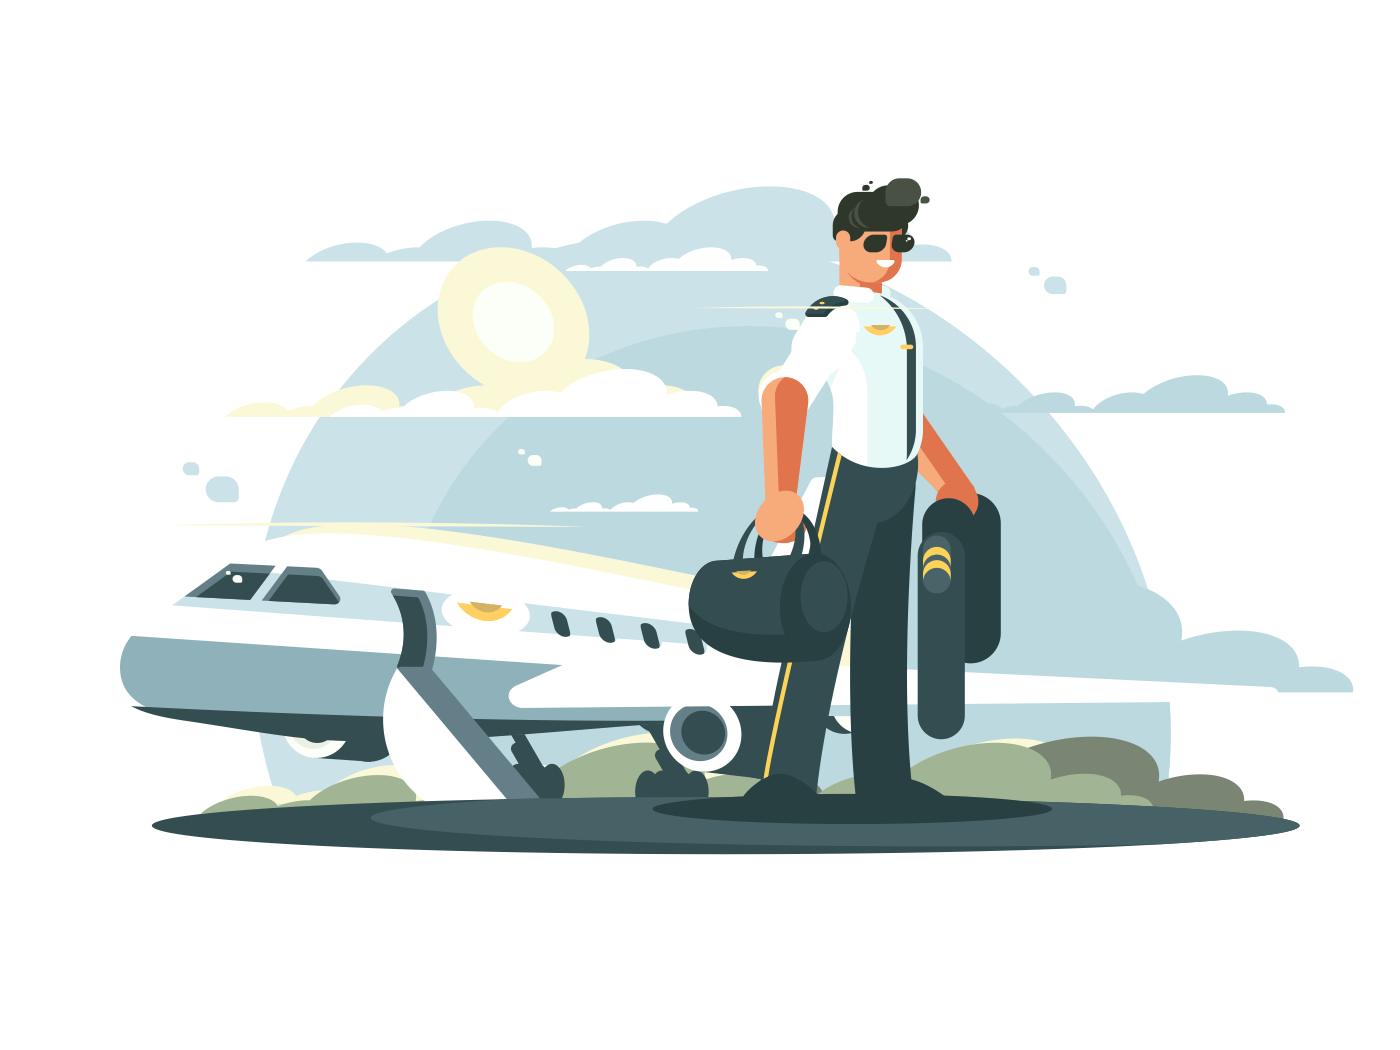 Profession pilot of aircraft. Man in uniform standing near airplane. Vector illustration